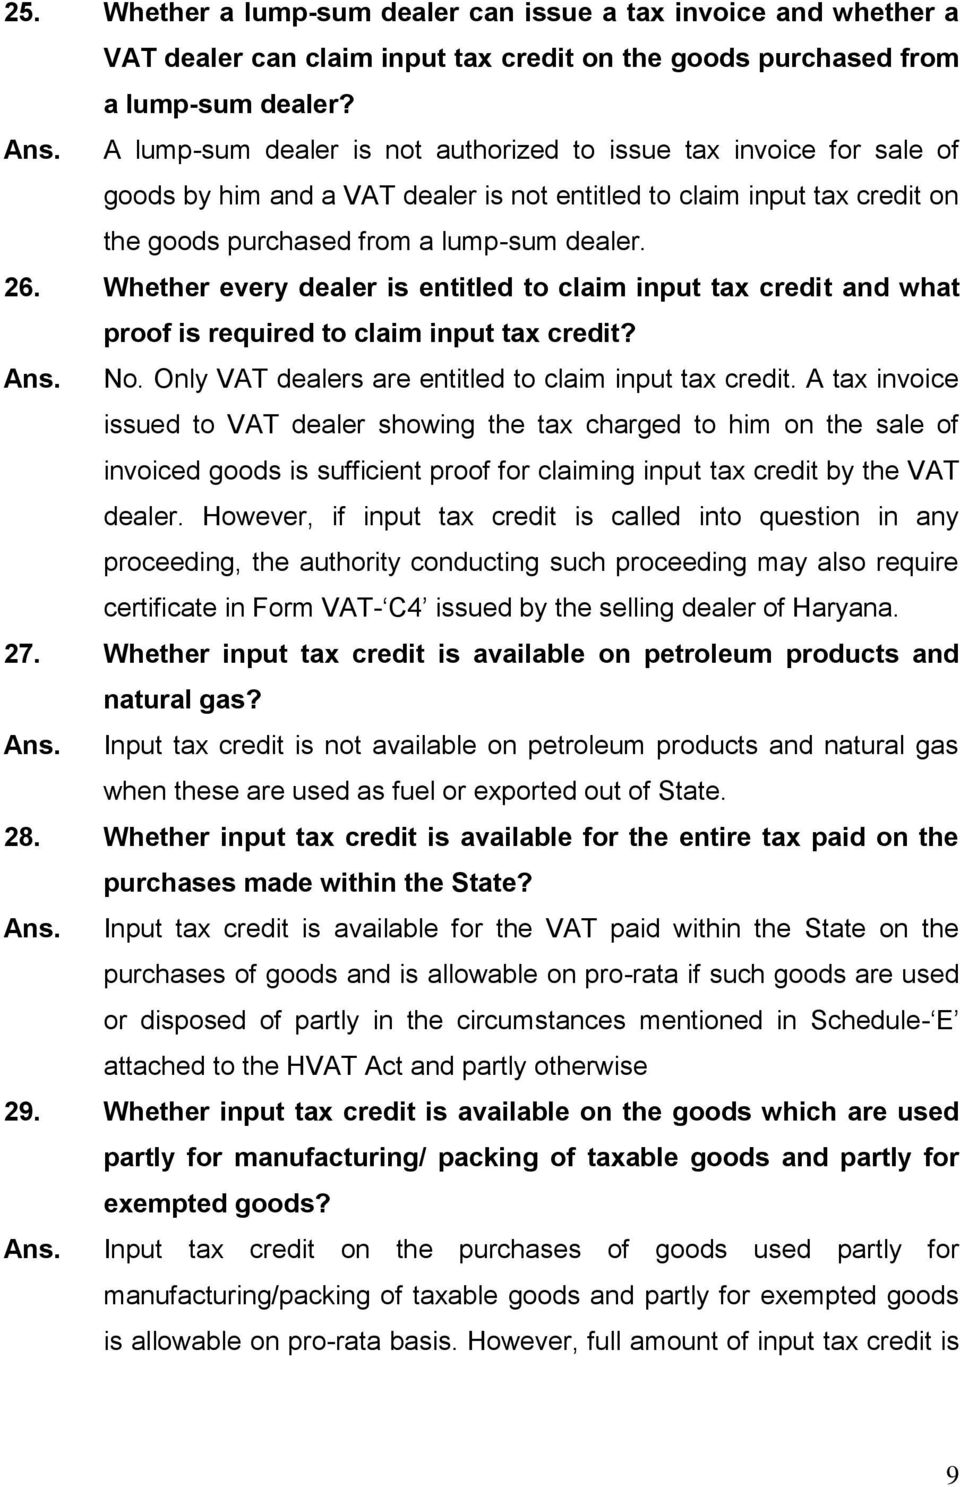 Whether every dealer is entitled to claim input tax credit and what proof is required to claim input tax credit? Ans. No. Only VAT dealers are entitled to claim input tax credit.